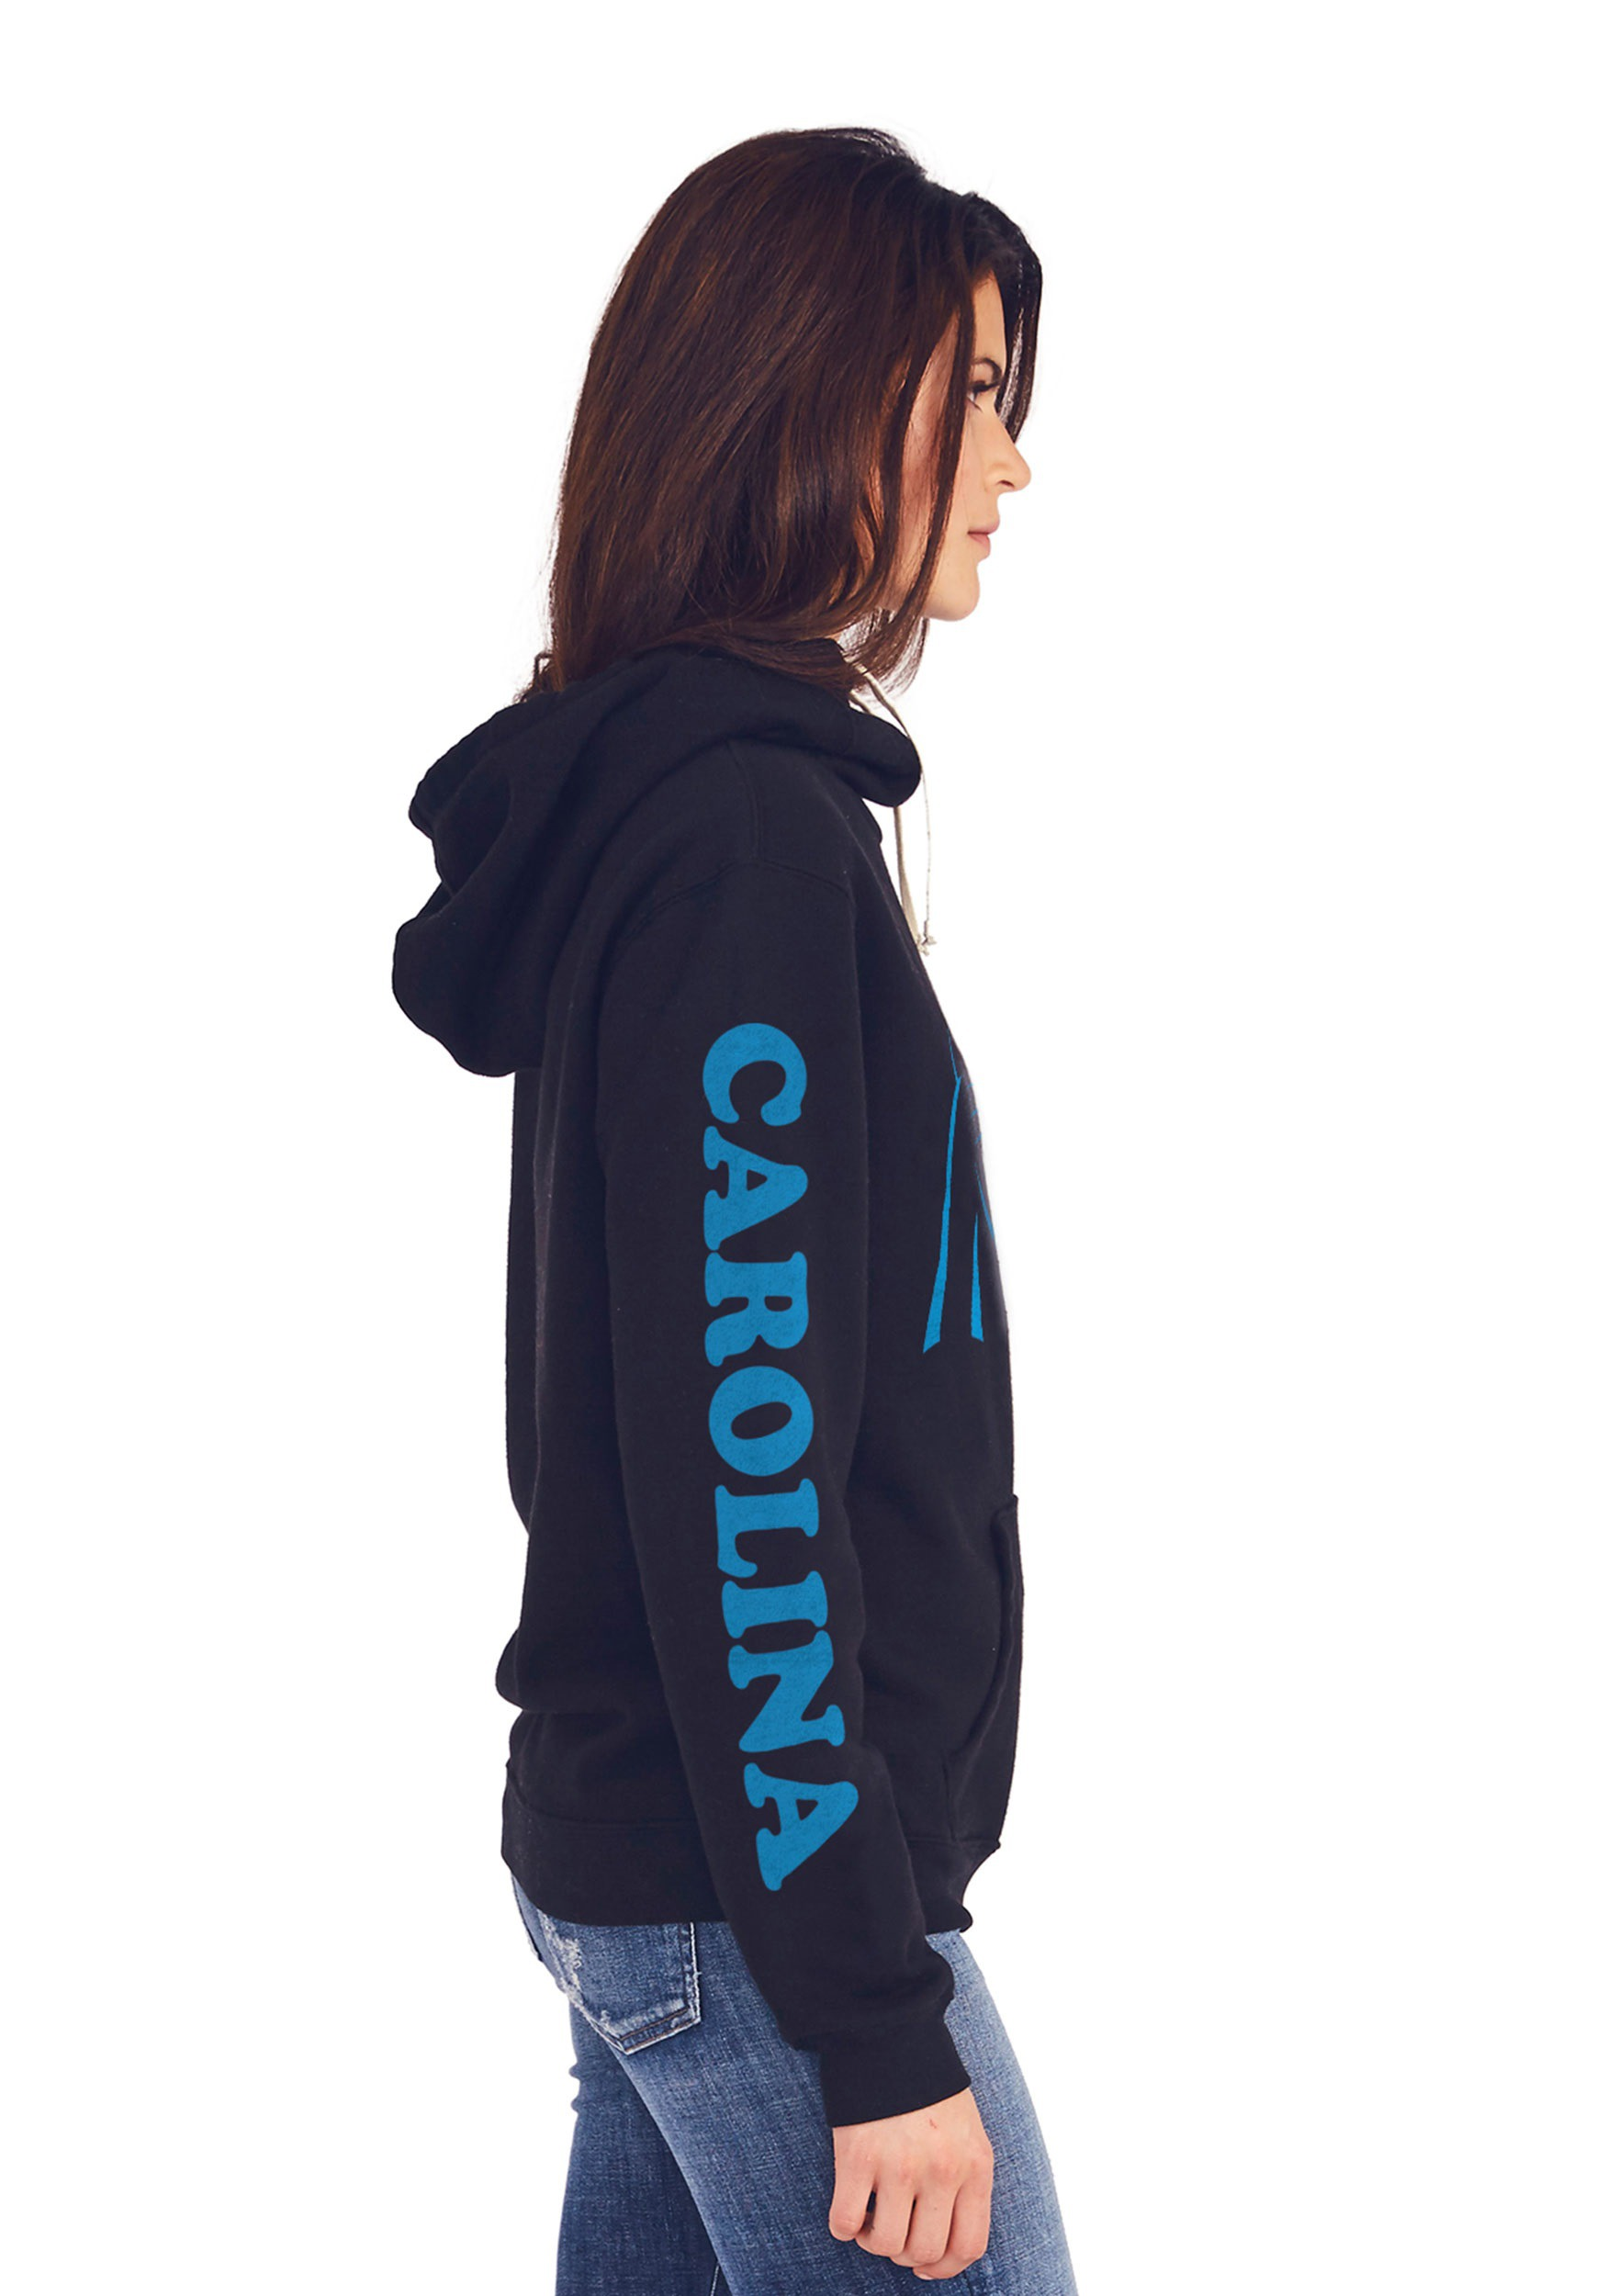 panthers sweatshirt womens